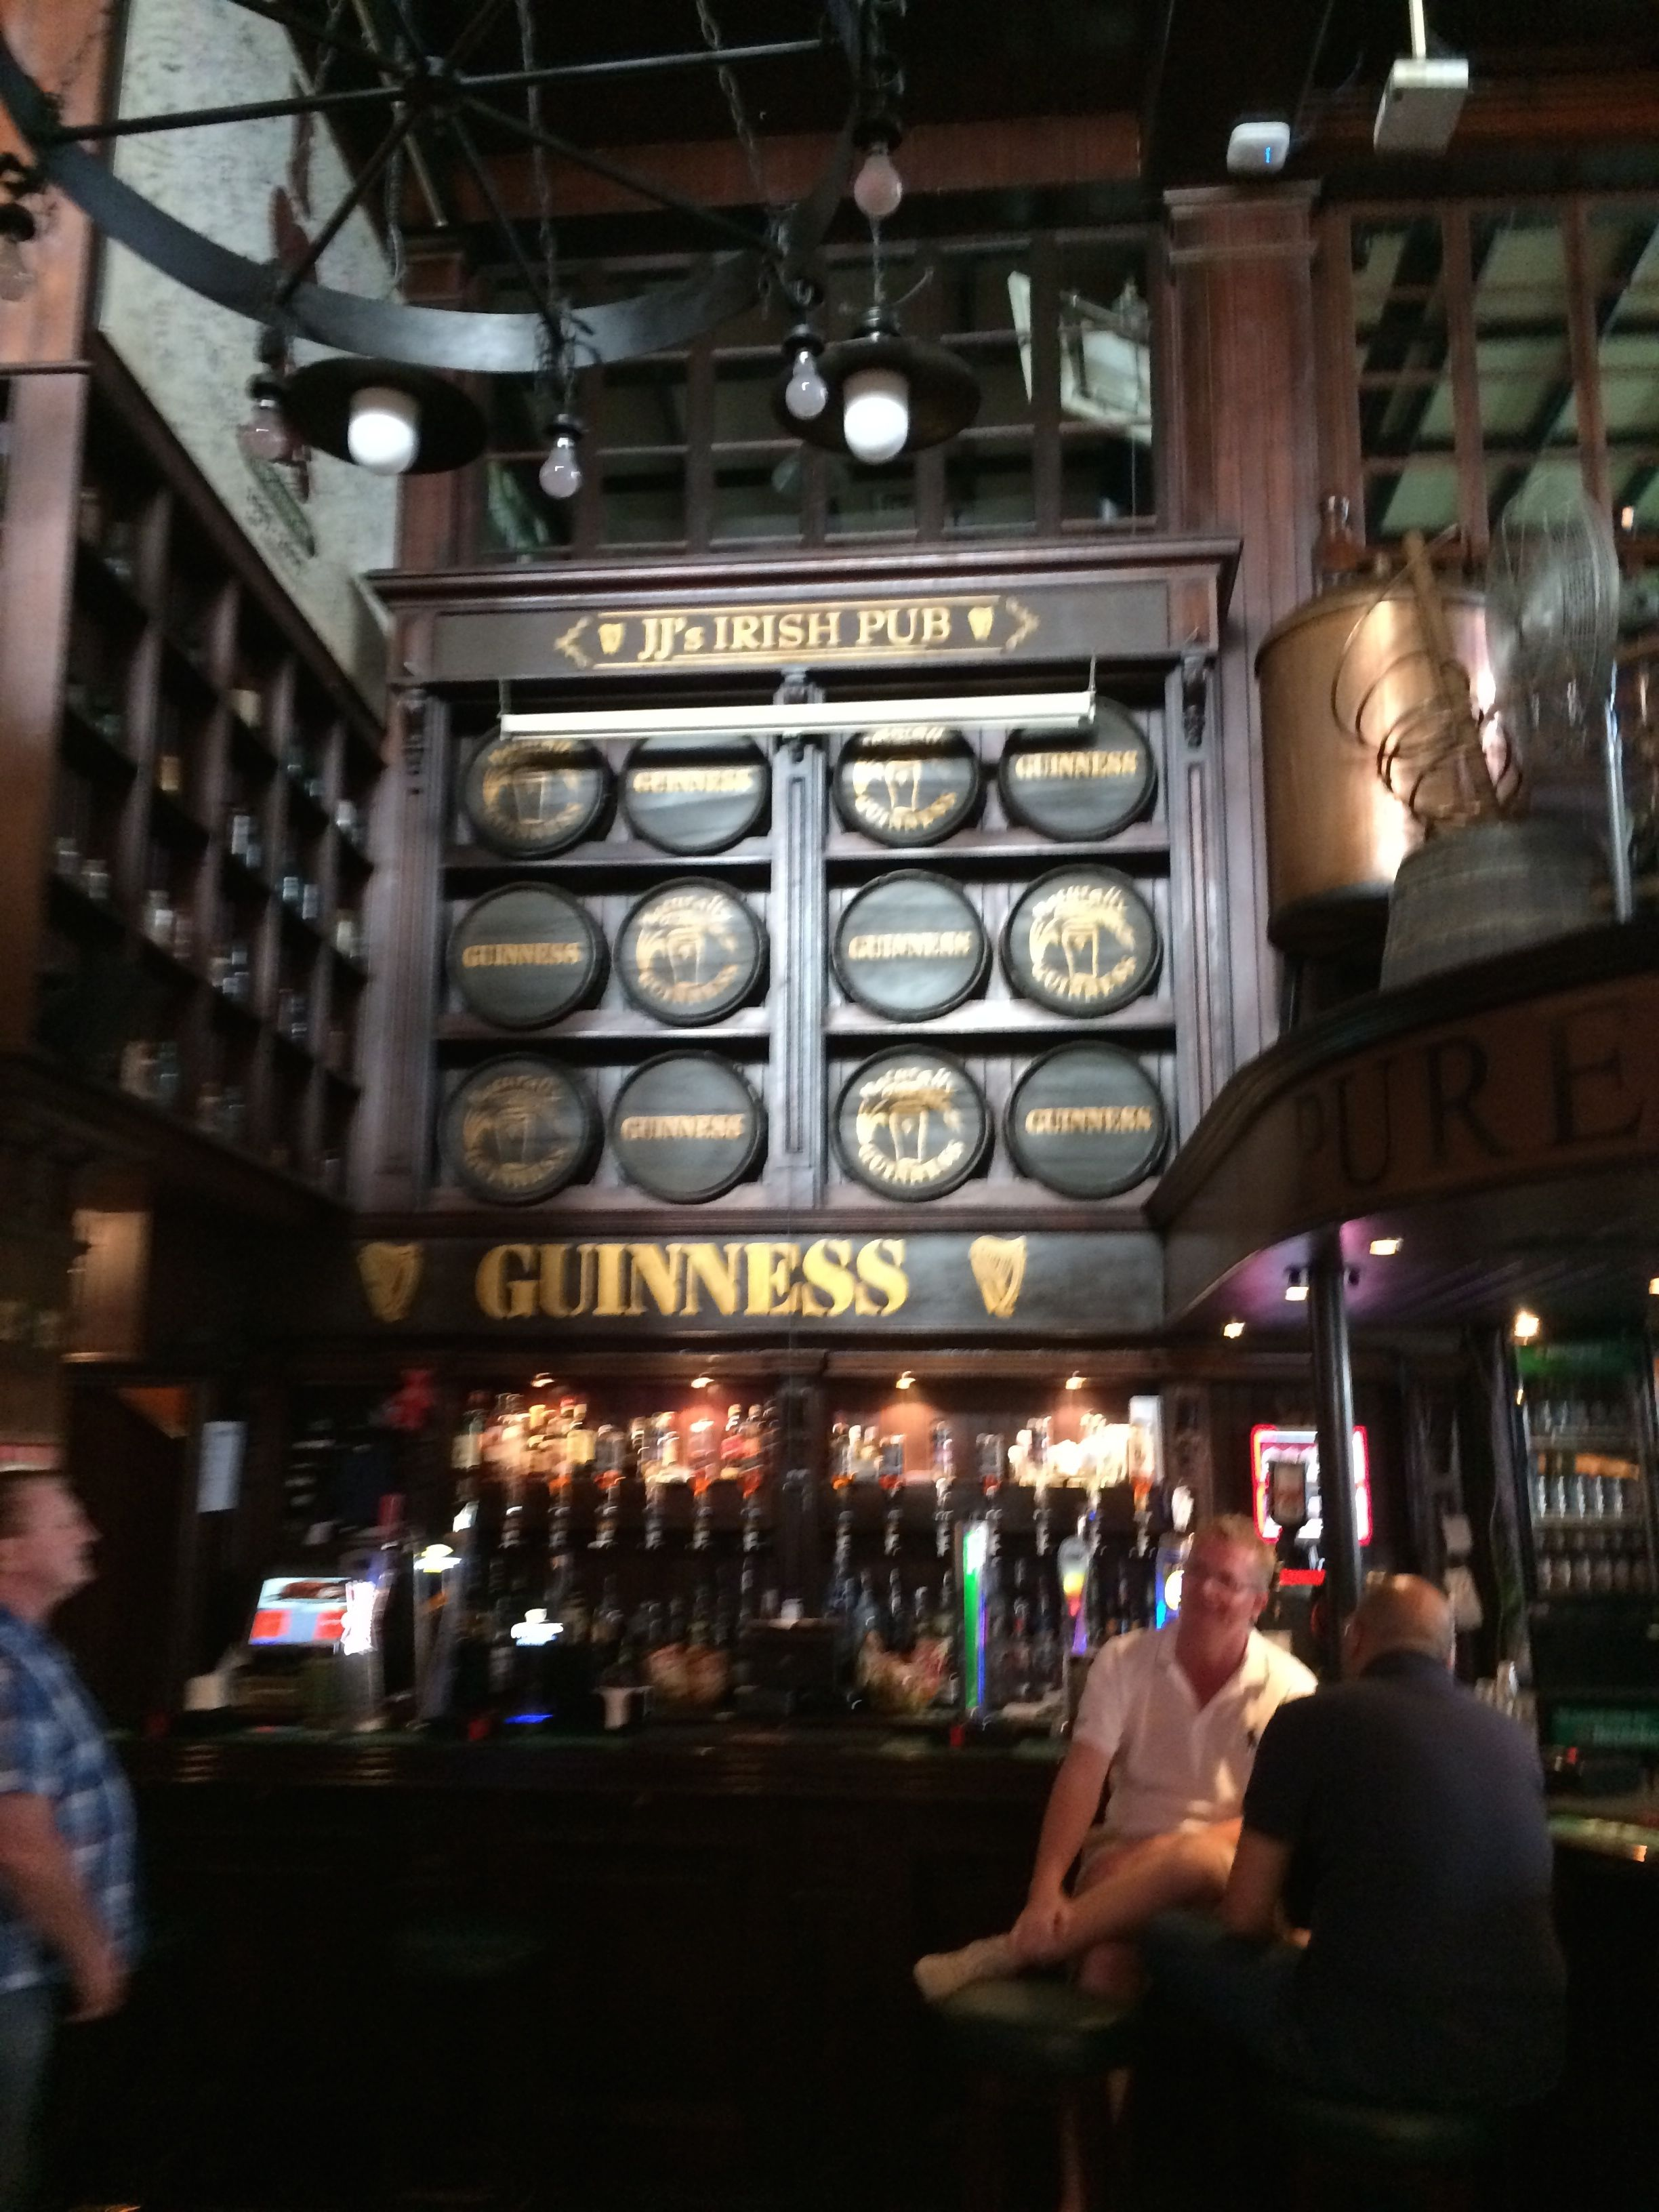 The shrine to Guinness at JJs Pub in Bahrain